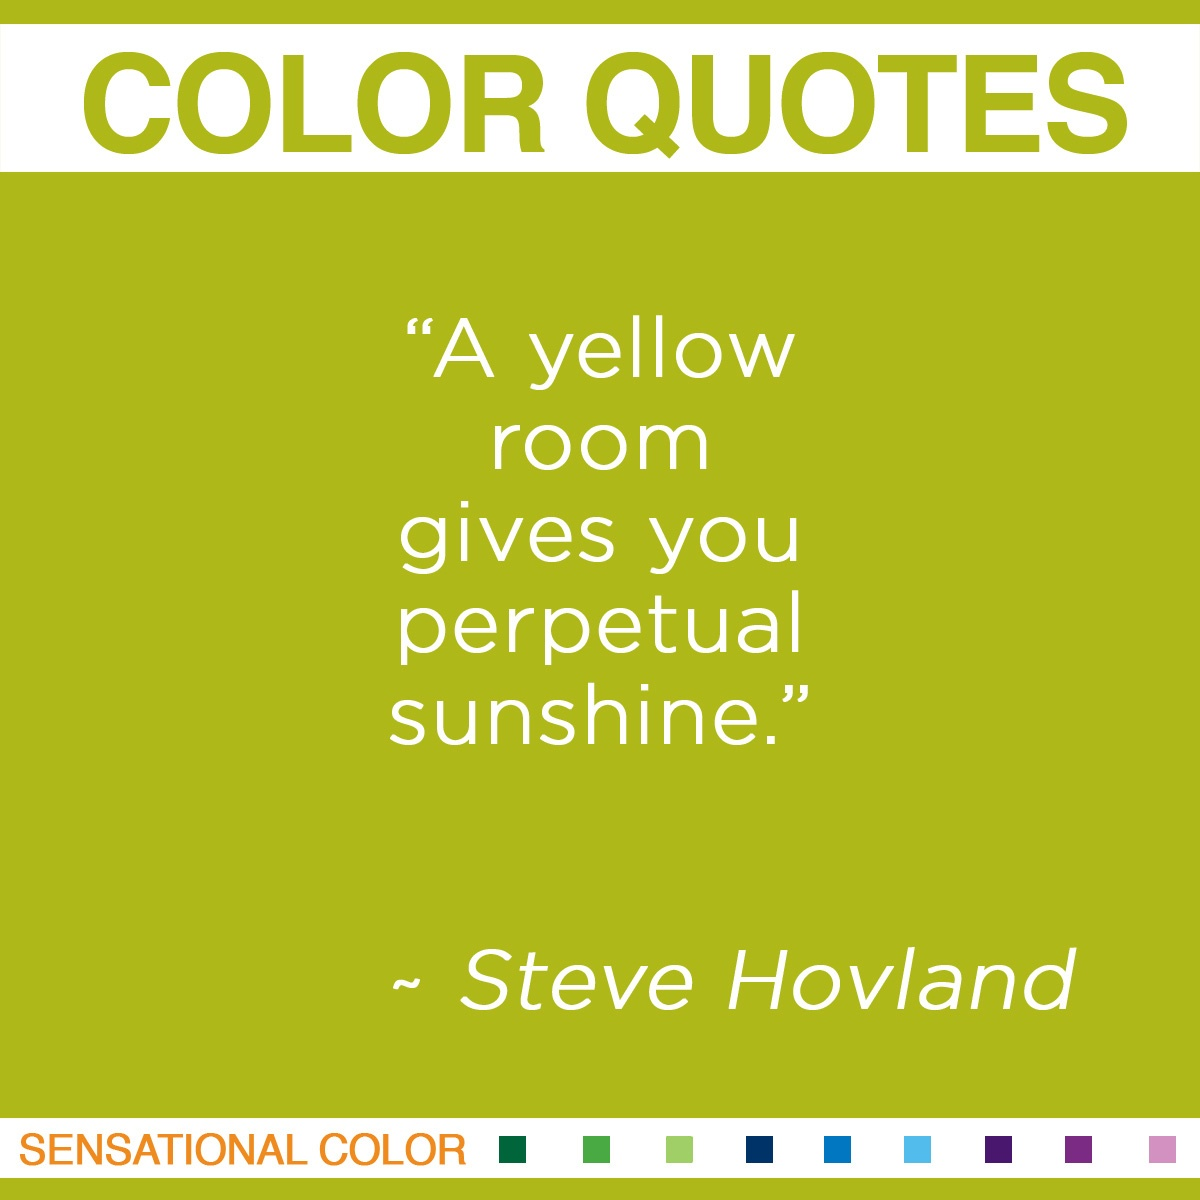 """A yellow room gives you perpetual sunshine."" - Steve Hovland"